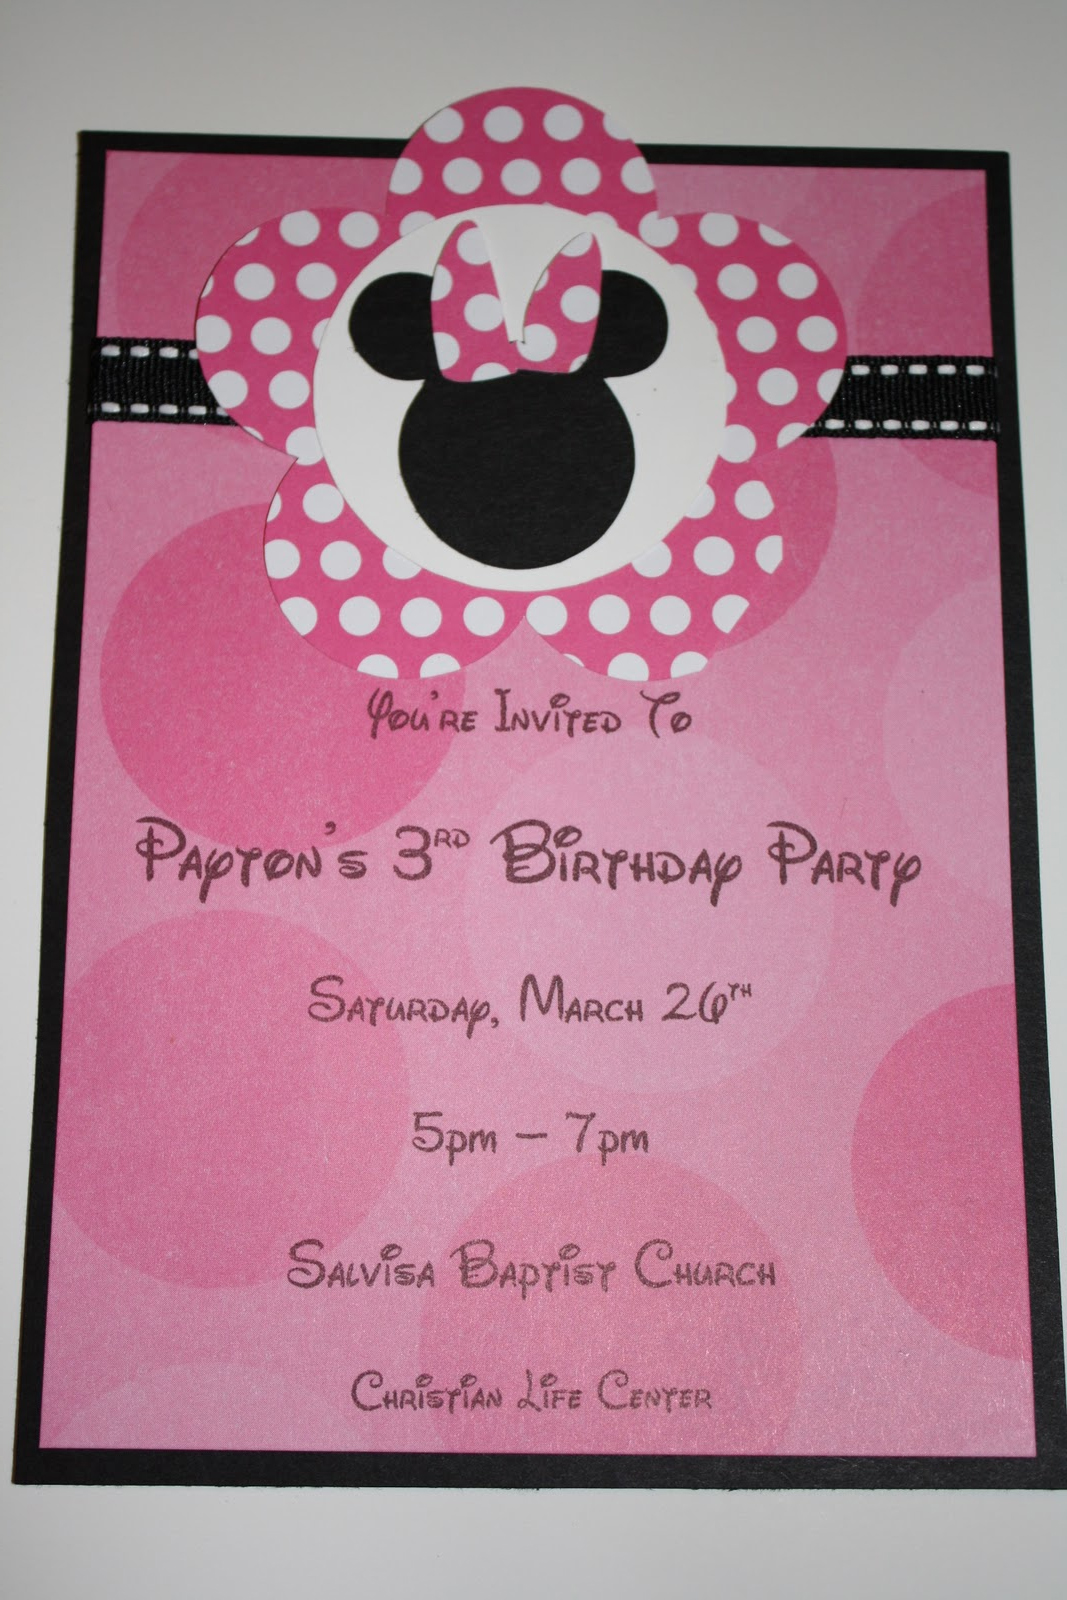 Paytons 3rd Birthday Party